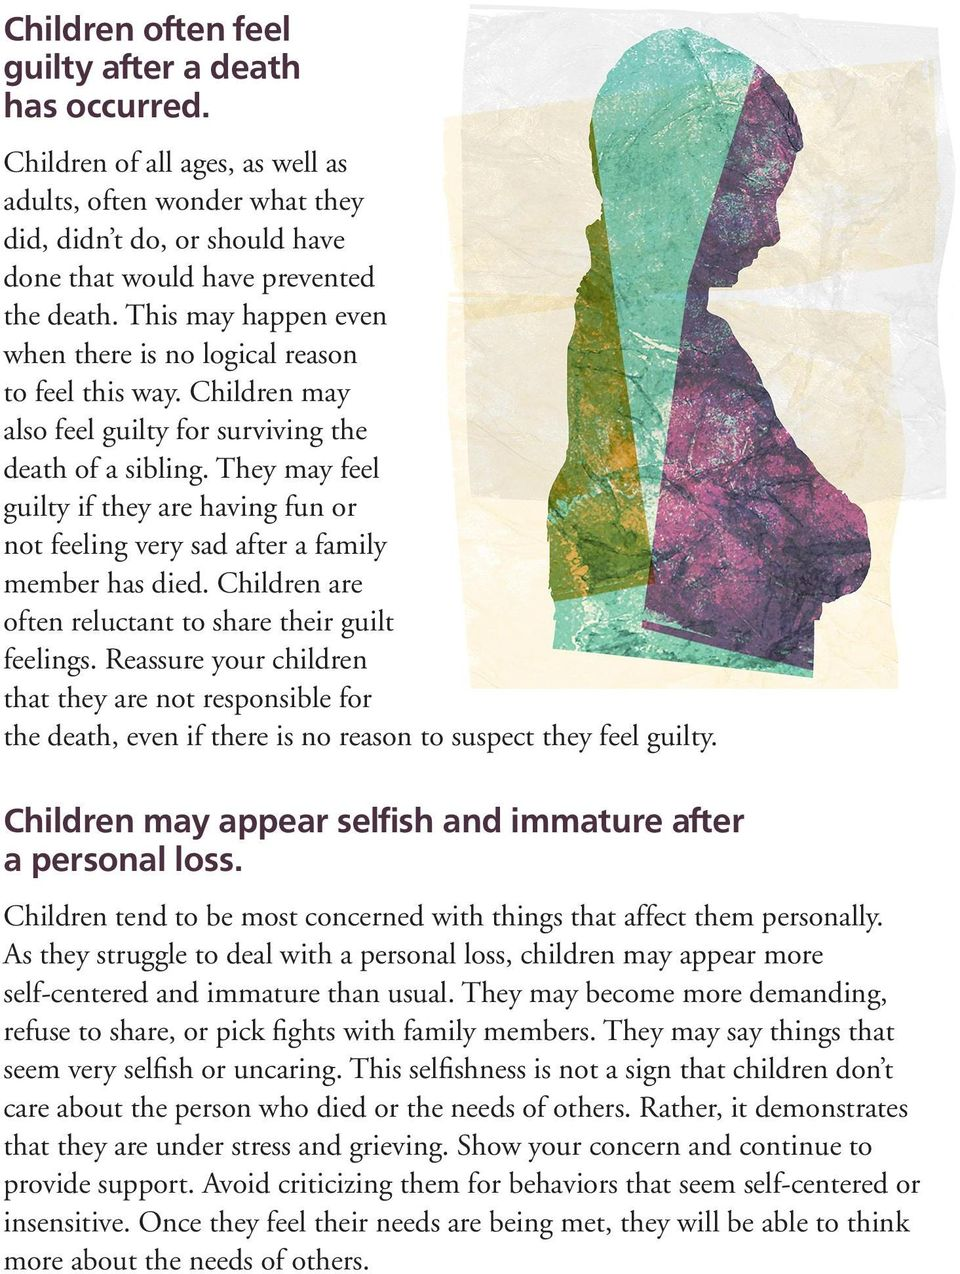 They may feel guilty if they are having fun or not feeling very sad after a family member has died. Children are often reluctant to share their guilt feelings.